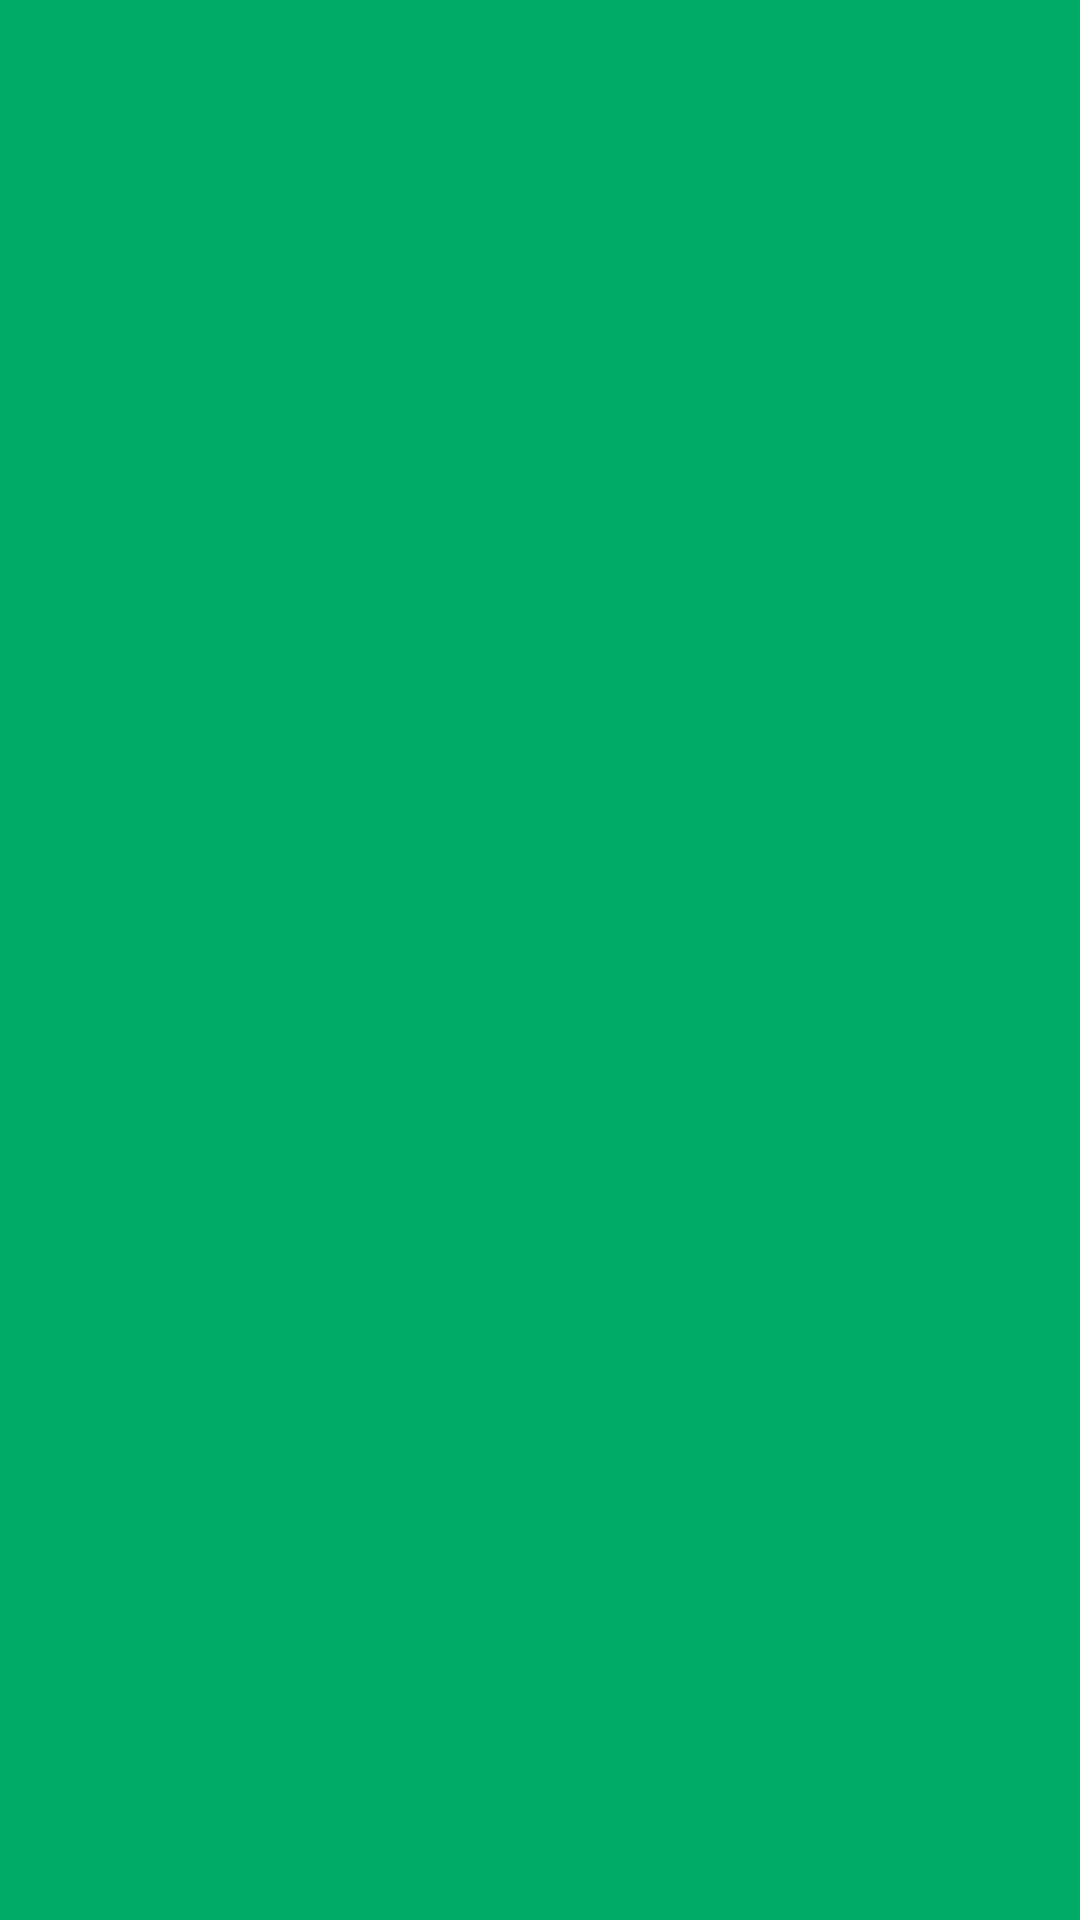 1080x1920 GO Green Solid Color Background